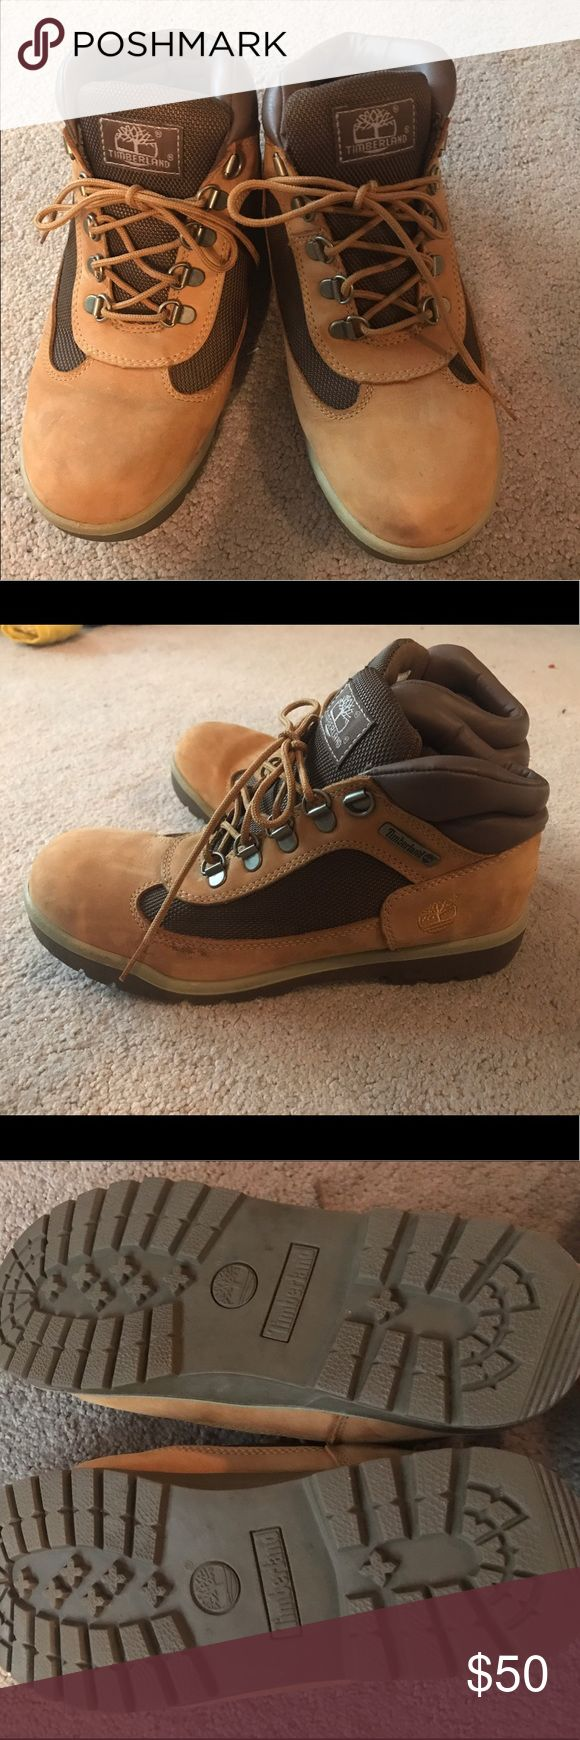 Timberland 1973 style tan and brown work boots Size 6 men's or size 8 women's, these boots are in excellent condition, barely any wear or tear. Can be worn for construction or for fashion. Timberland Shoes Winter & Rain Boots